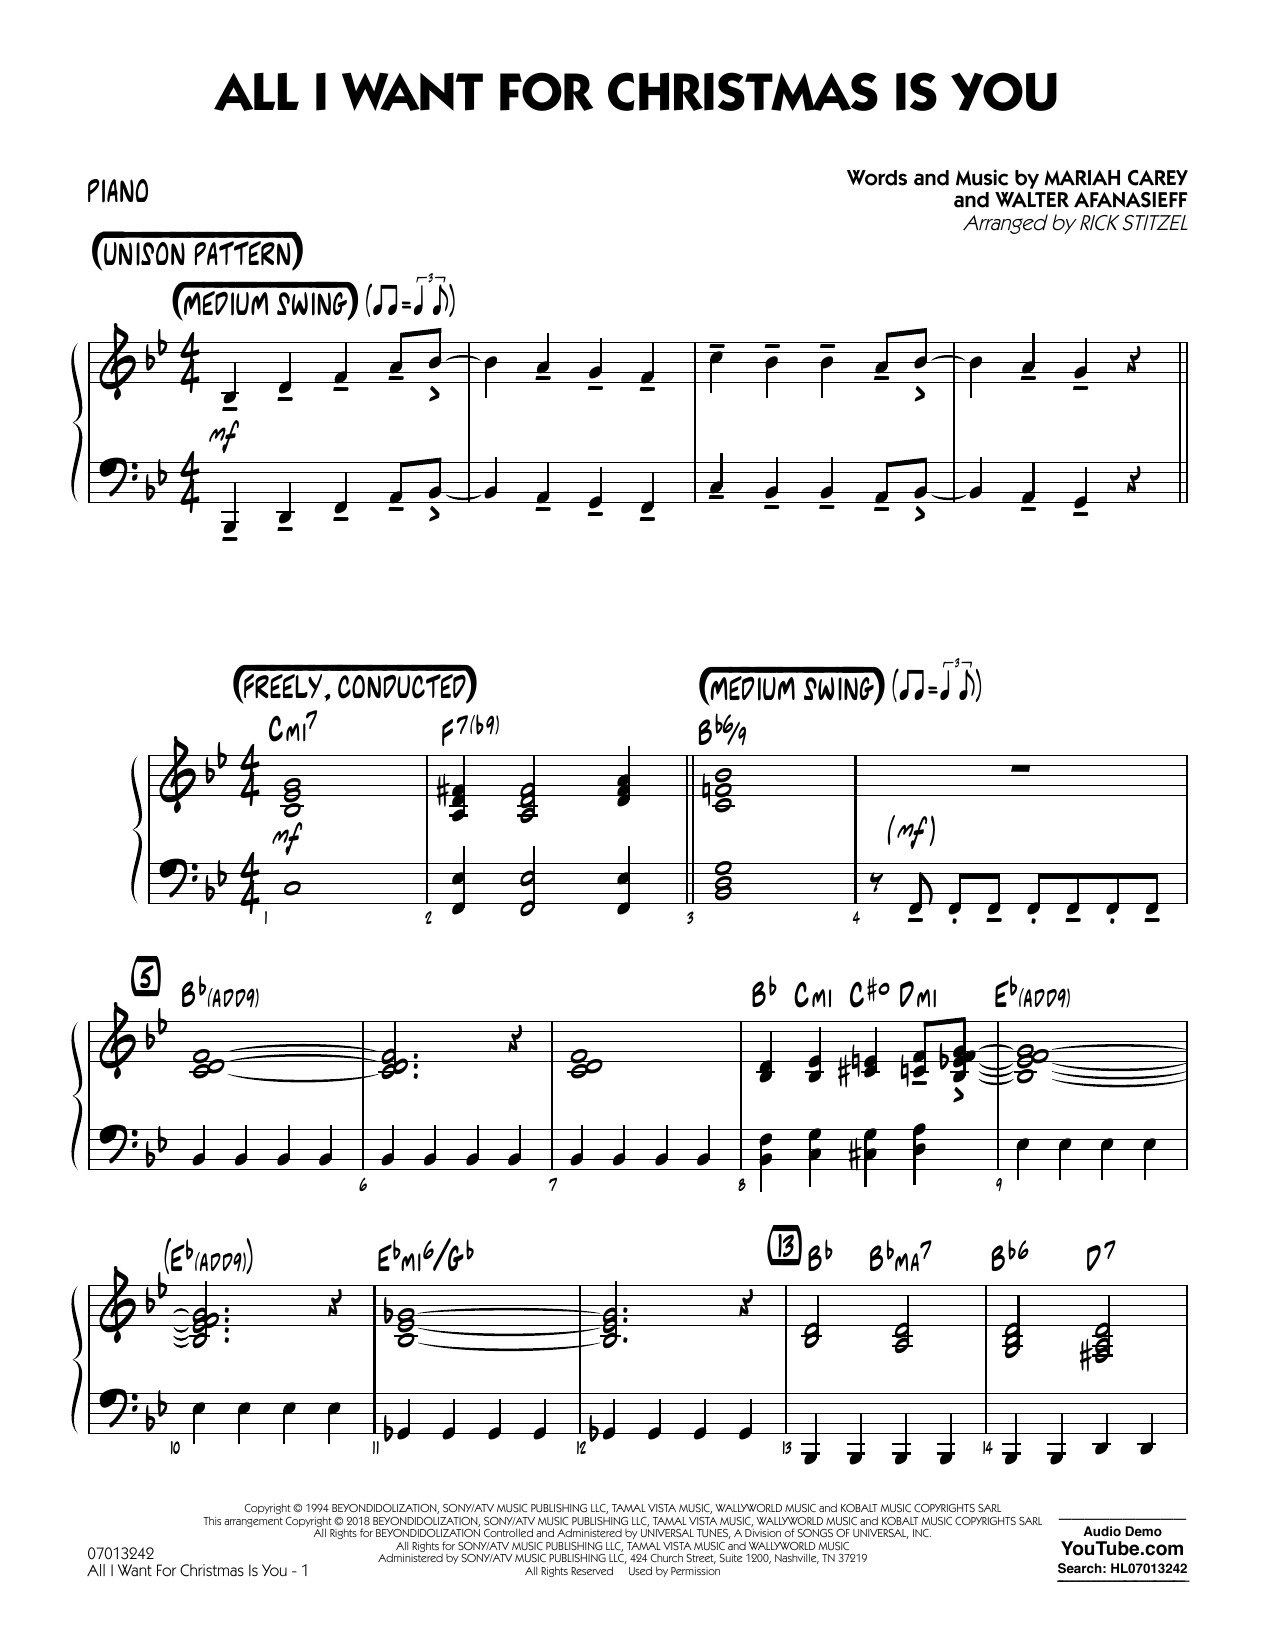 Rick Stitzel All I Want For Christmas Is You - Piano sheet music notes and chords. Download Printable PDF.